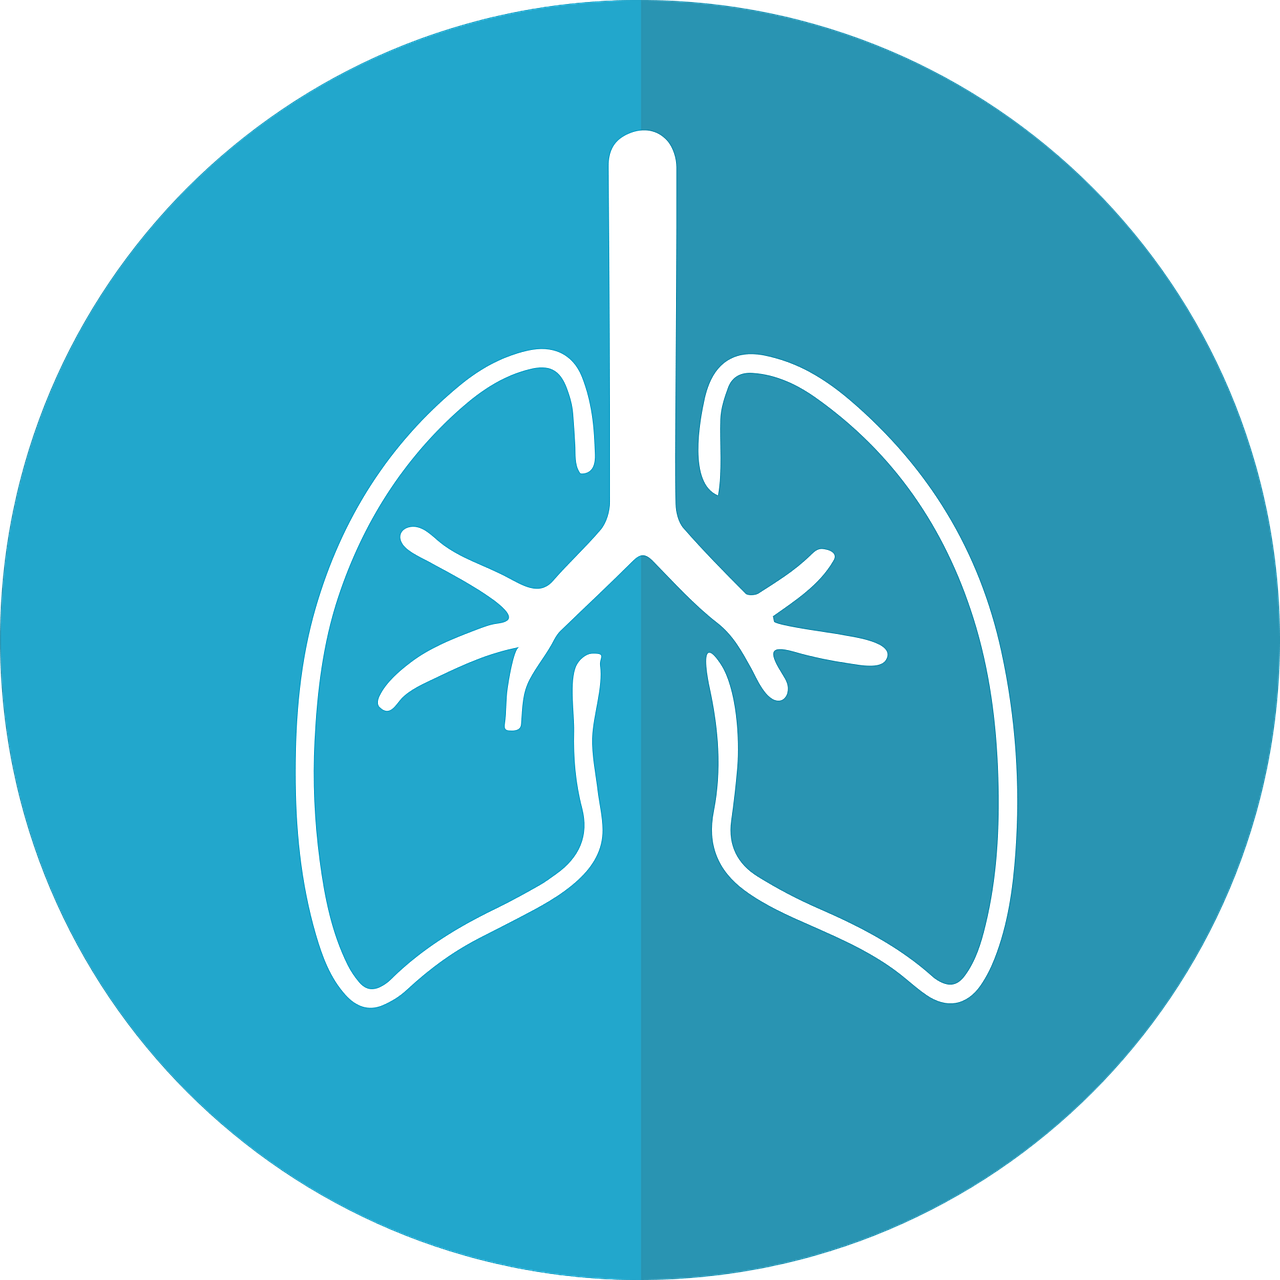 Salient points to remember. Lungs clipart pneumonia